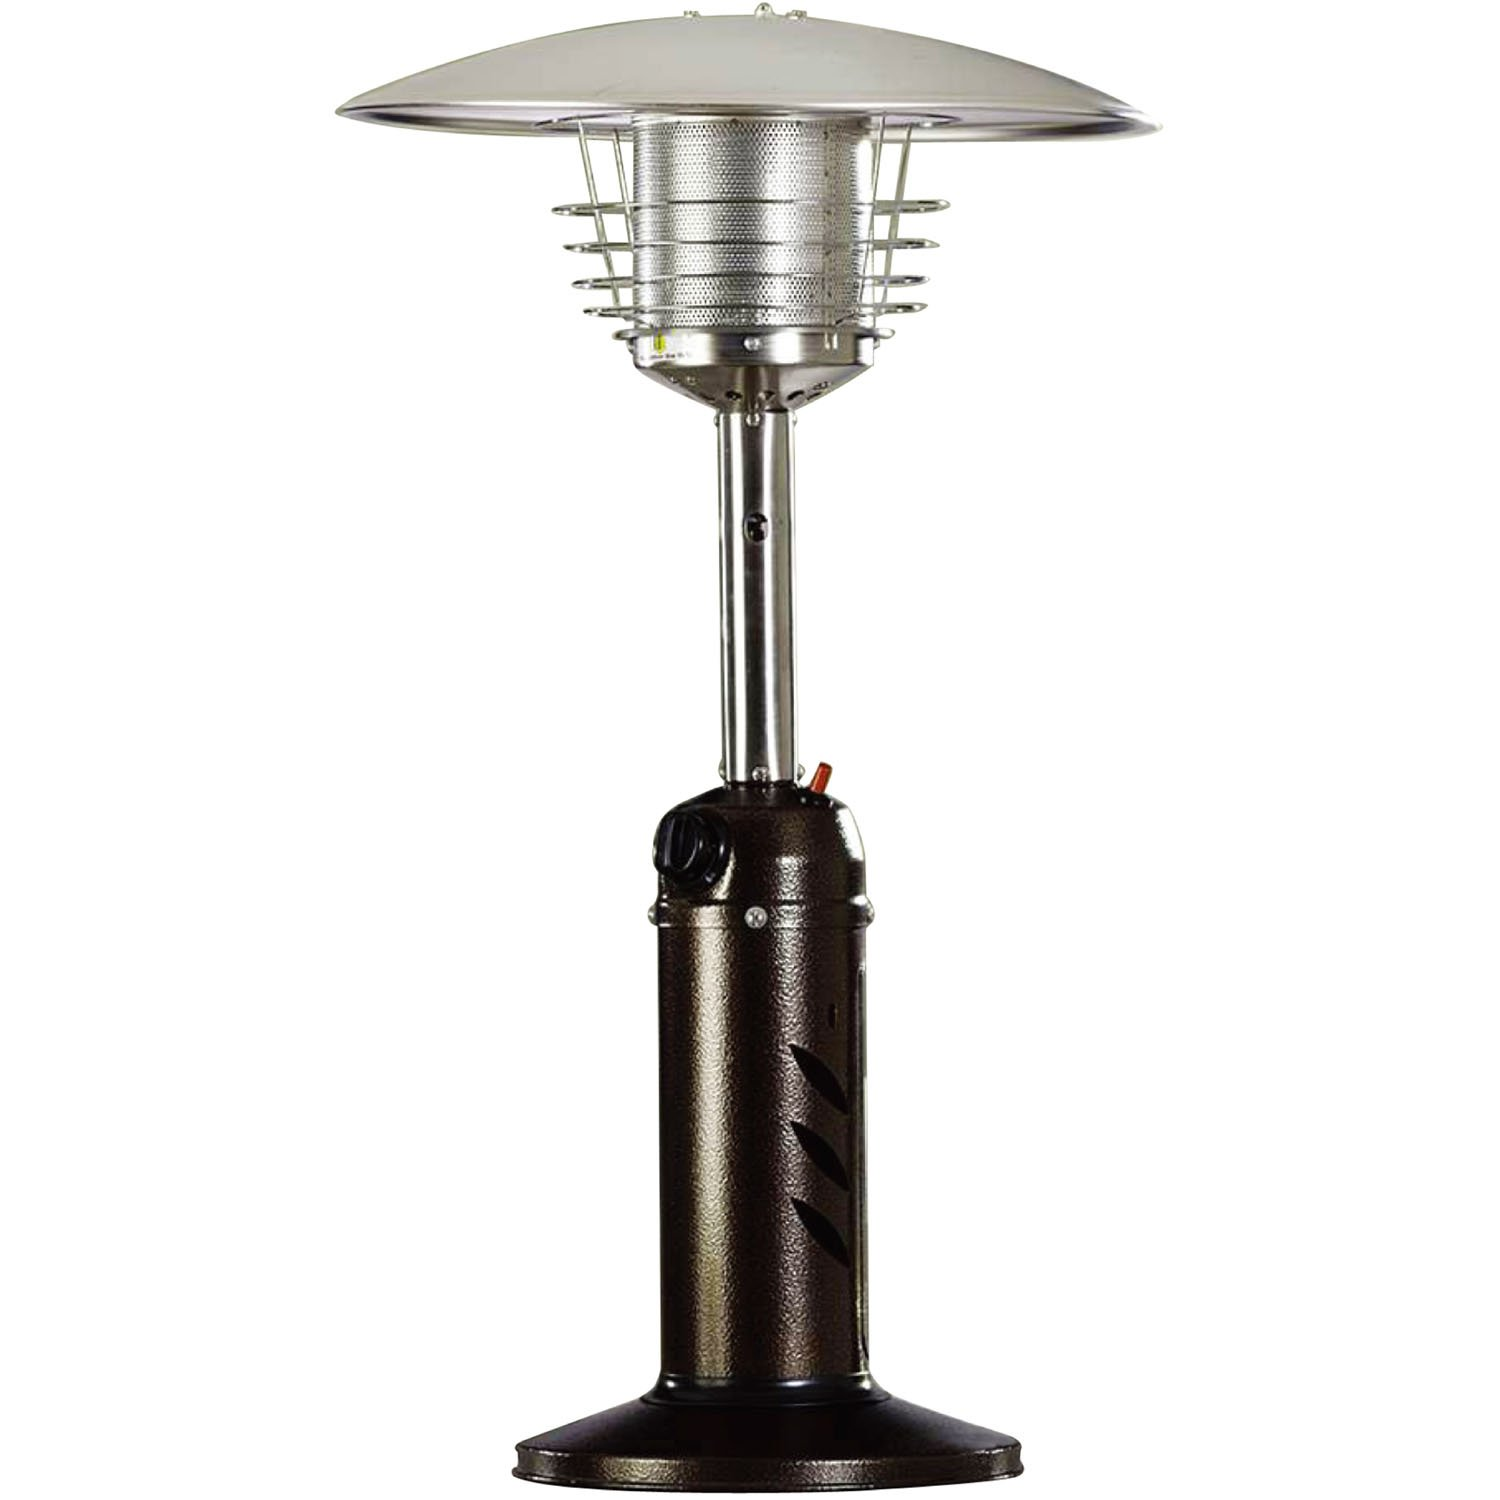 Hanover HAN0204HB Mini Umbrella Tabletop Propane Patio Heater